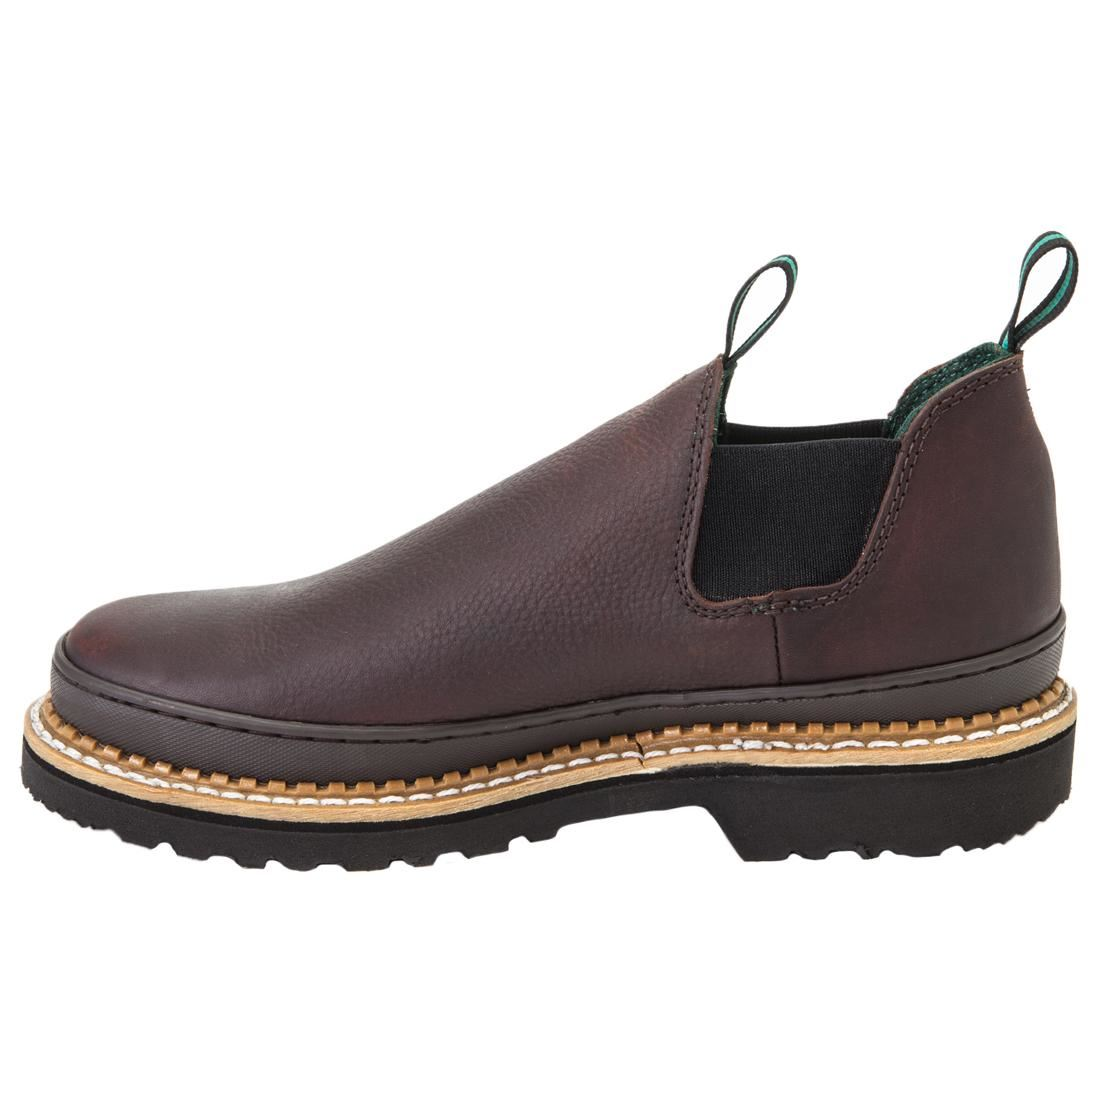 EVERYTHING ON SALE. No matter the reason - closeout, discontinued, overstock - get a great deal on a pair of men's or women's work boots or shoes.